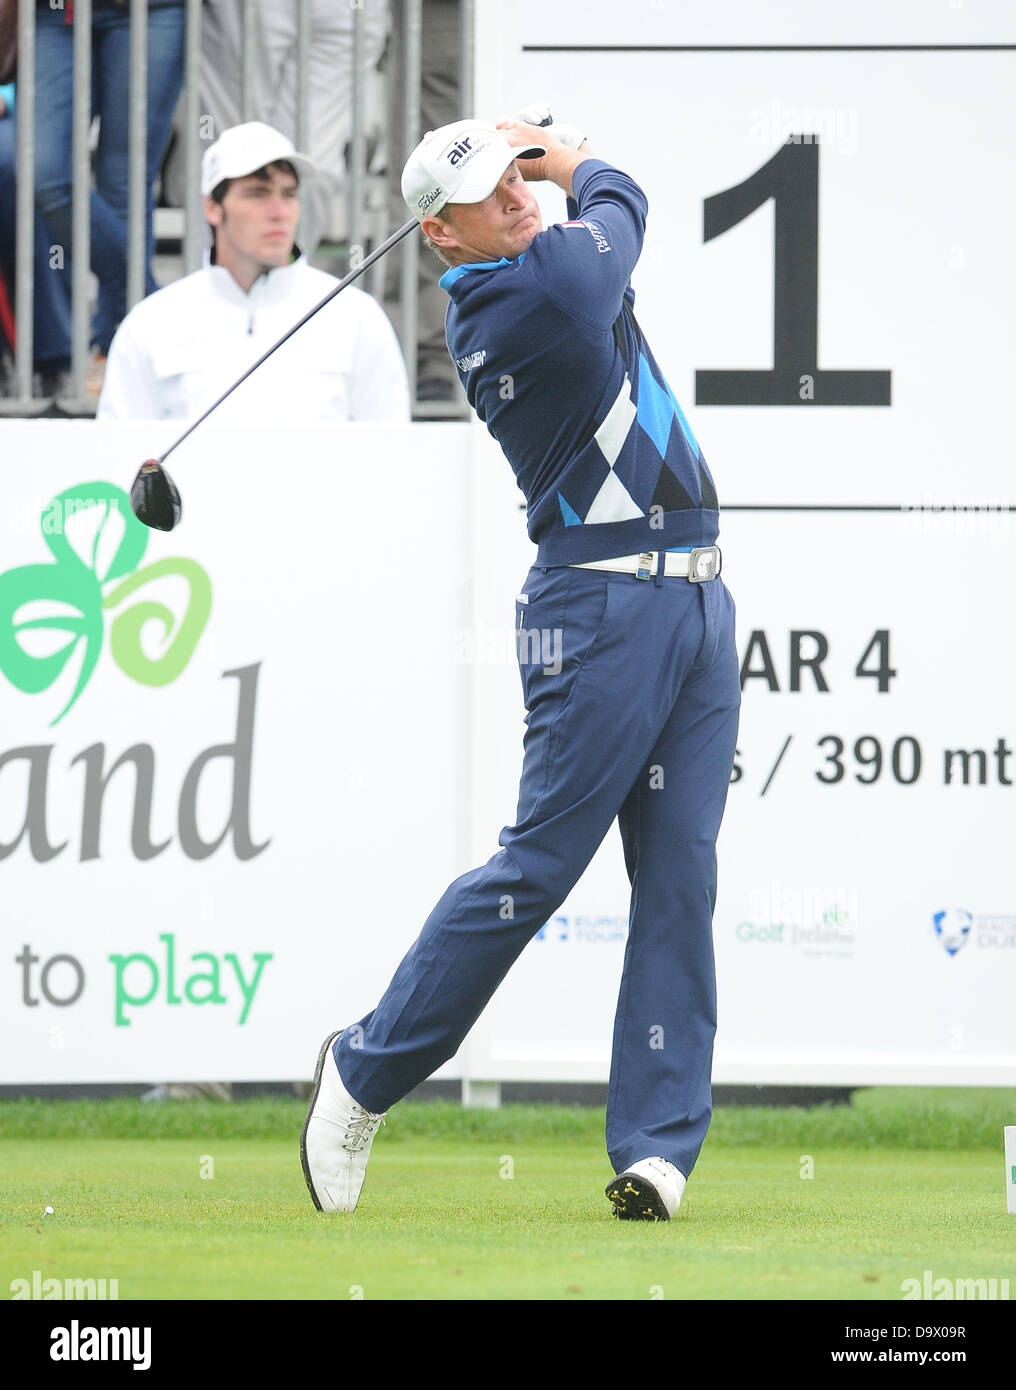 Maynooth, Ireland. 27th June 2013. Jamie Donaldson drives from the first tee during the first round of the Irish - Stock Image